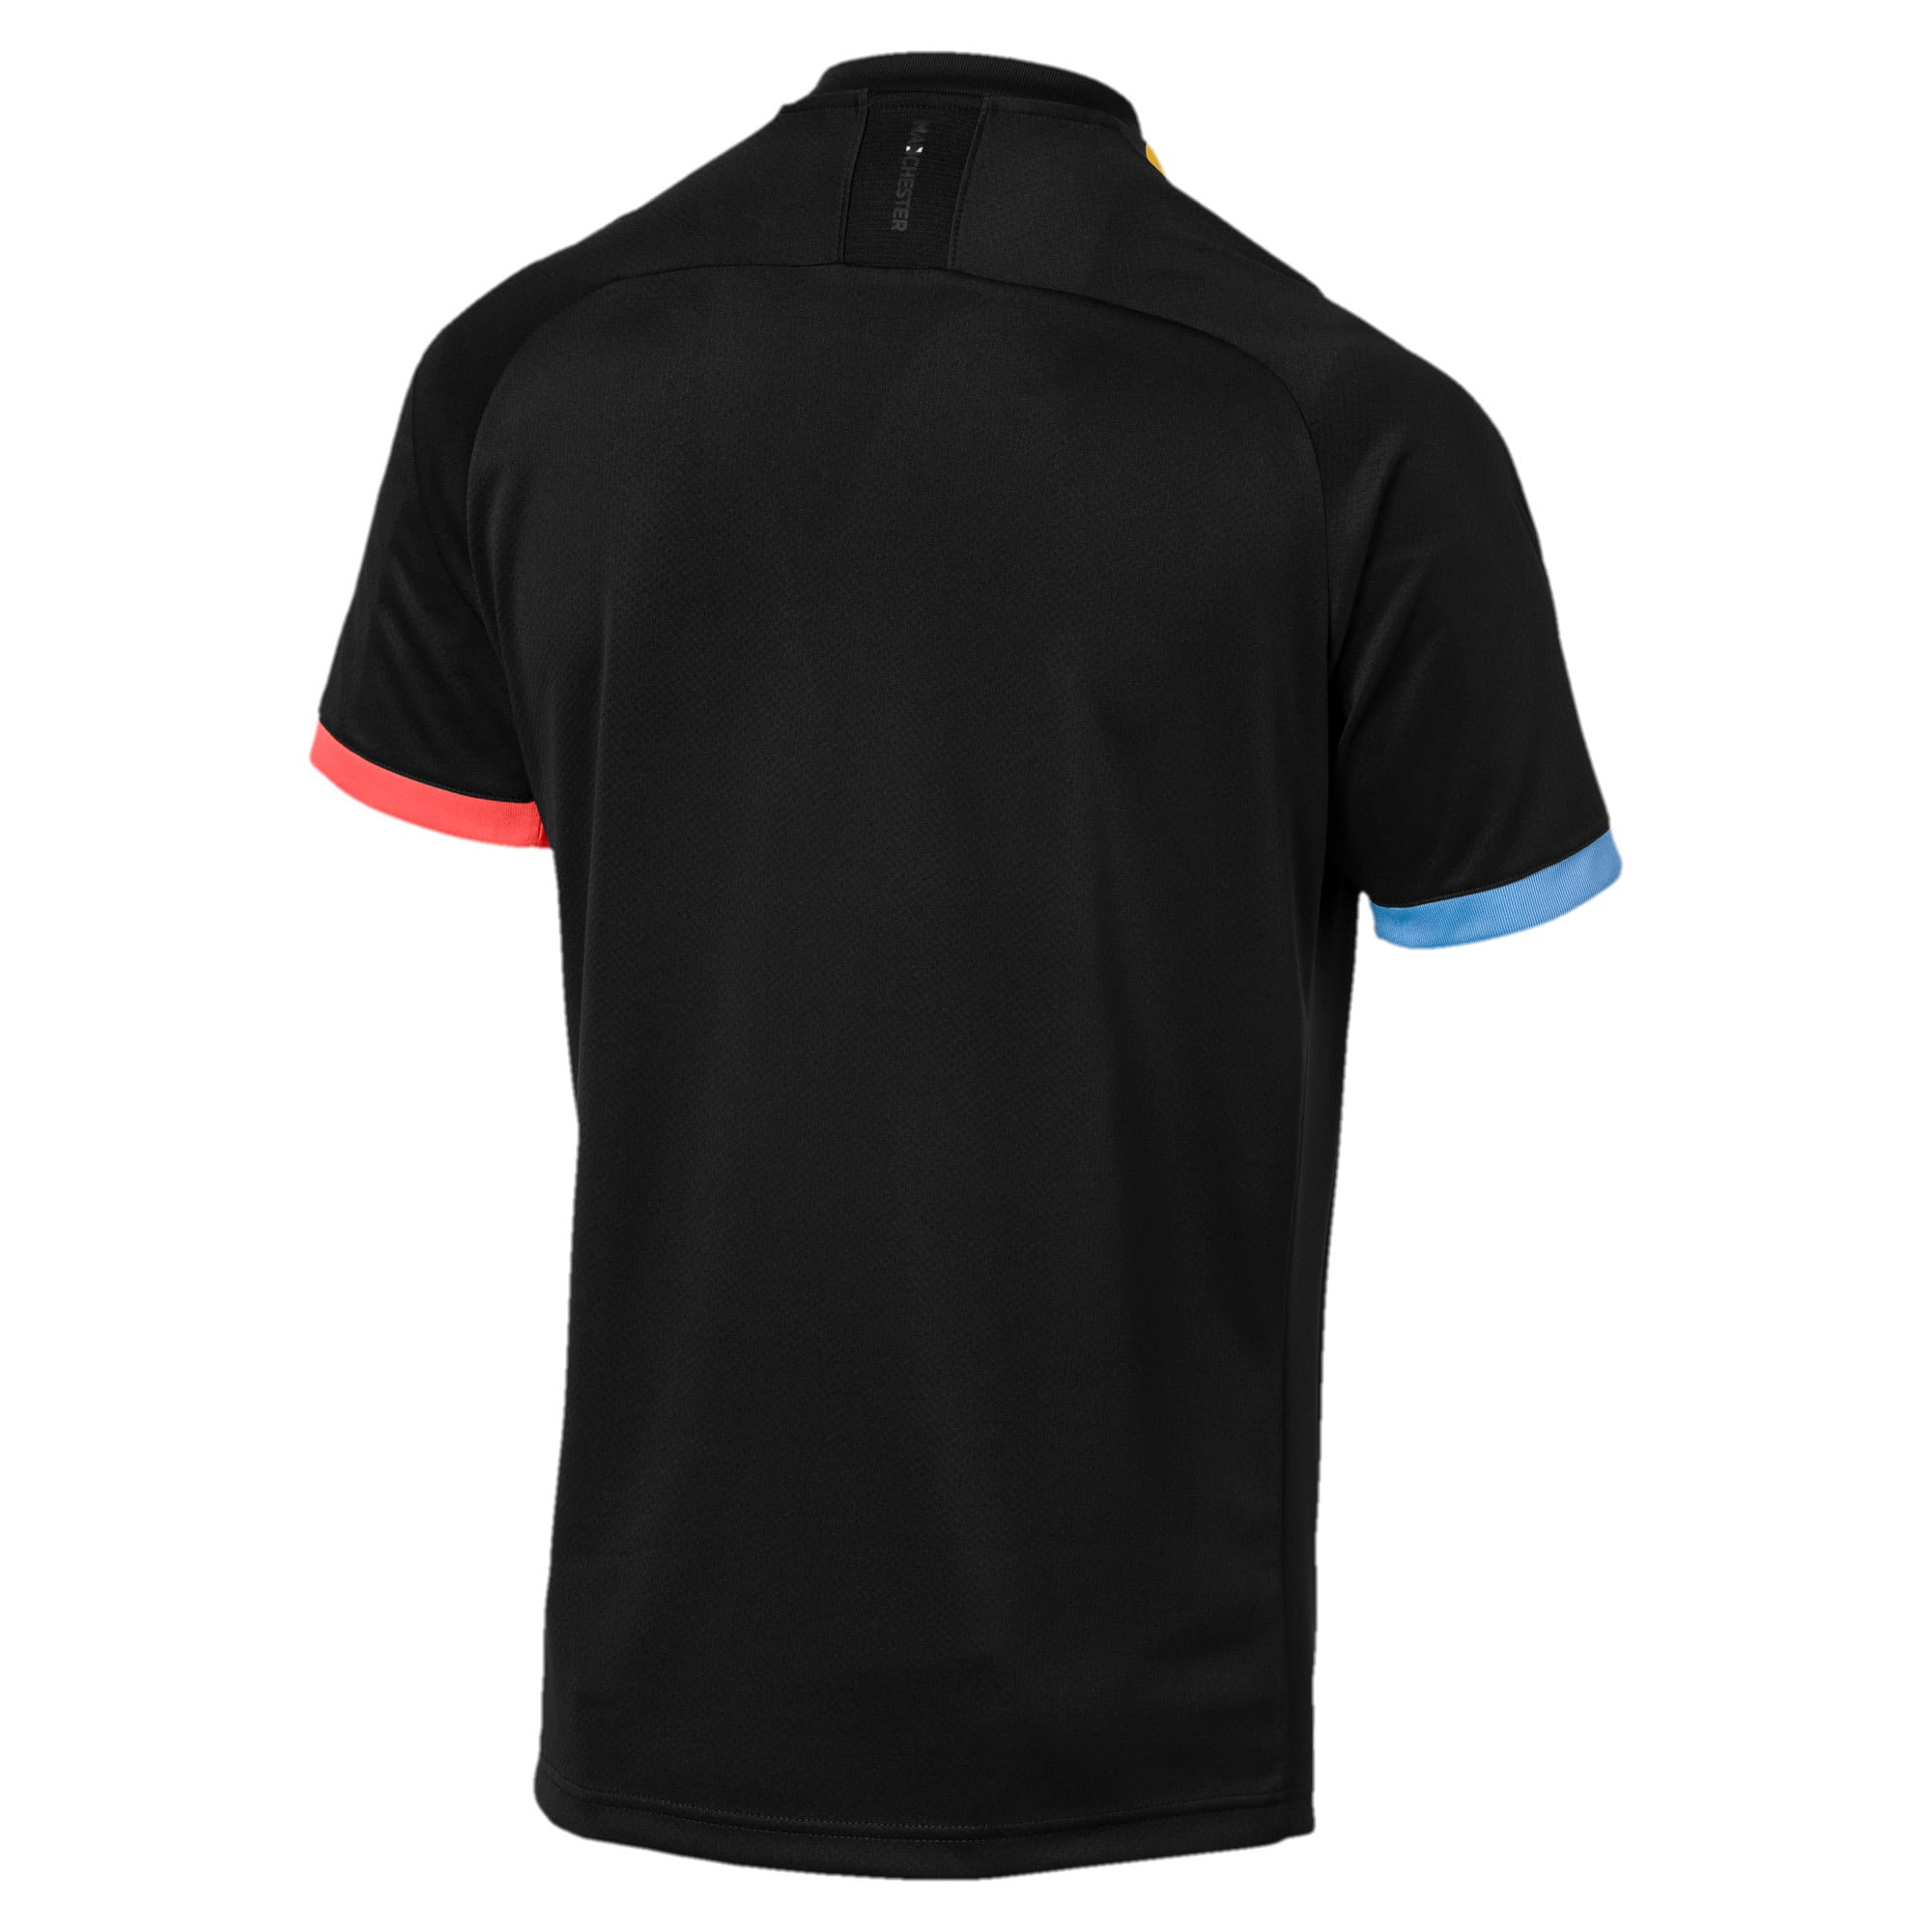 Thumbnail 2 of Man City Short Sleeve Men's Away Replica Jersey, Puma Black-Georgia Peach, medium